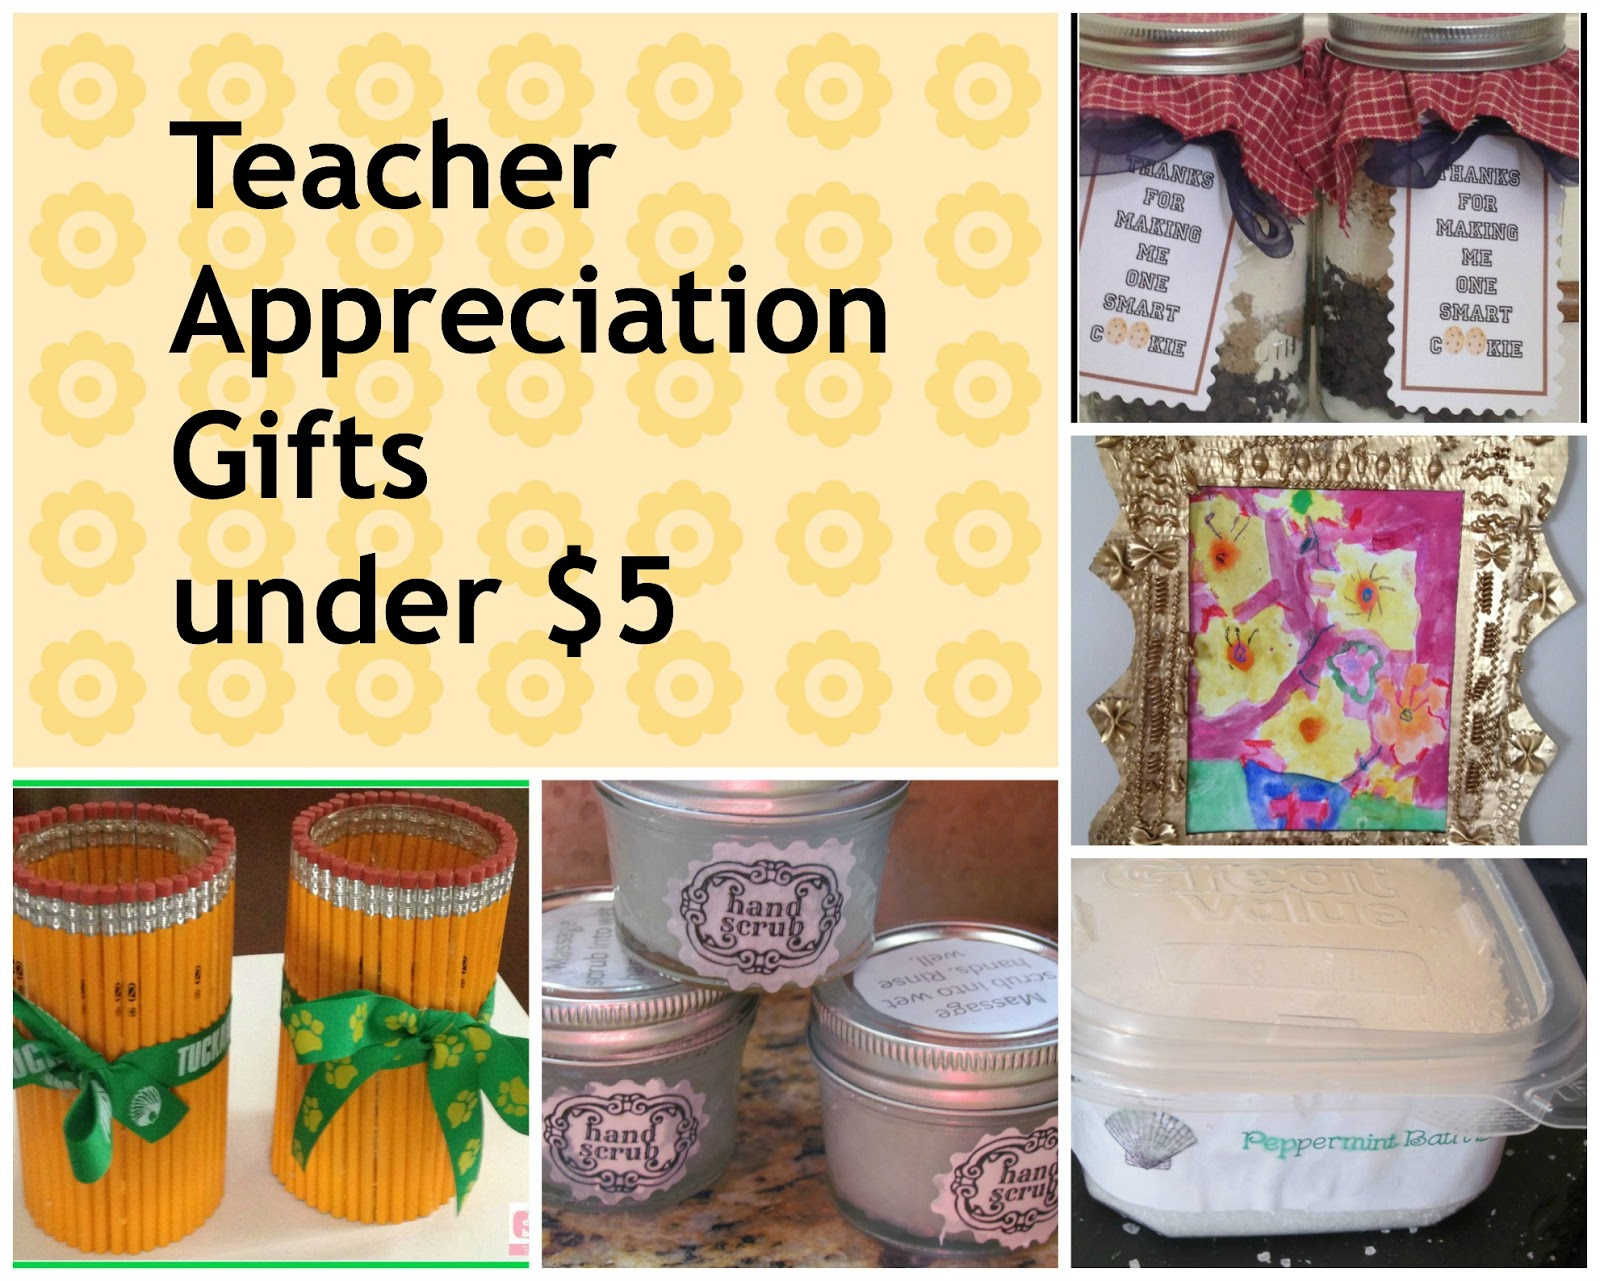 Diy and handmade teacher apreciation gifts diy handmade teacher appreciation gifts from pinterest negle Image collections